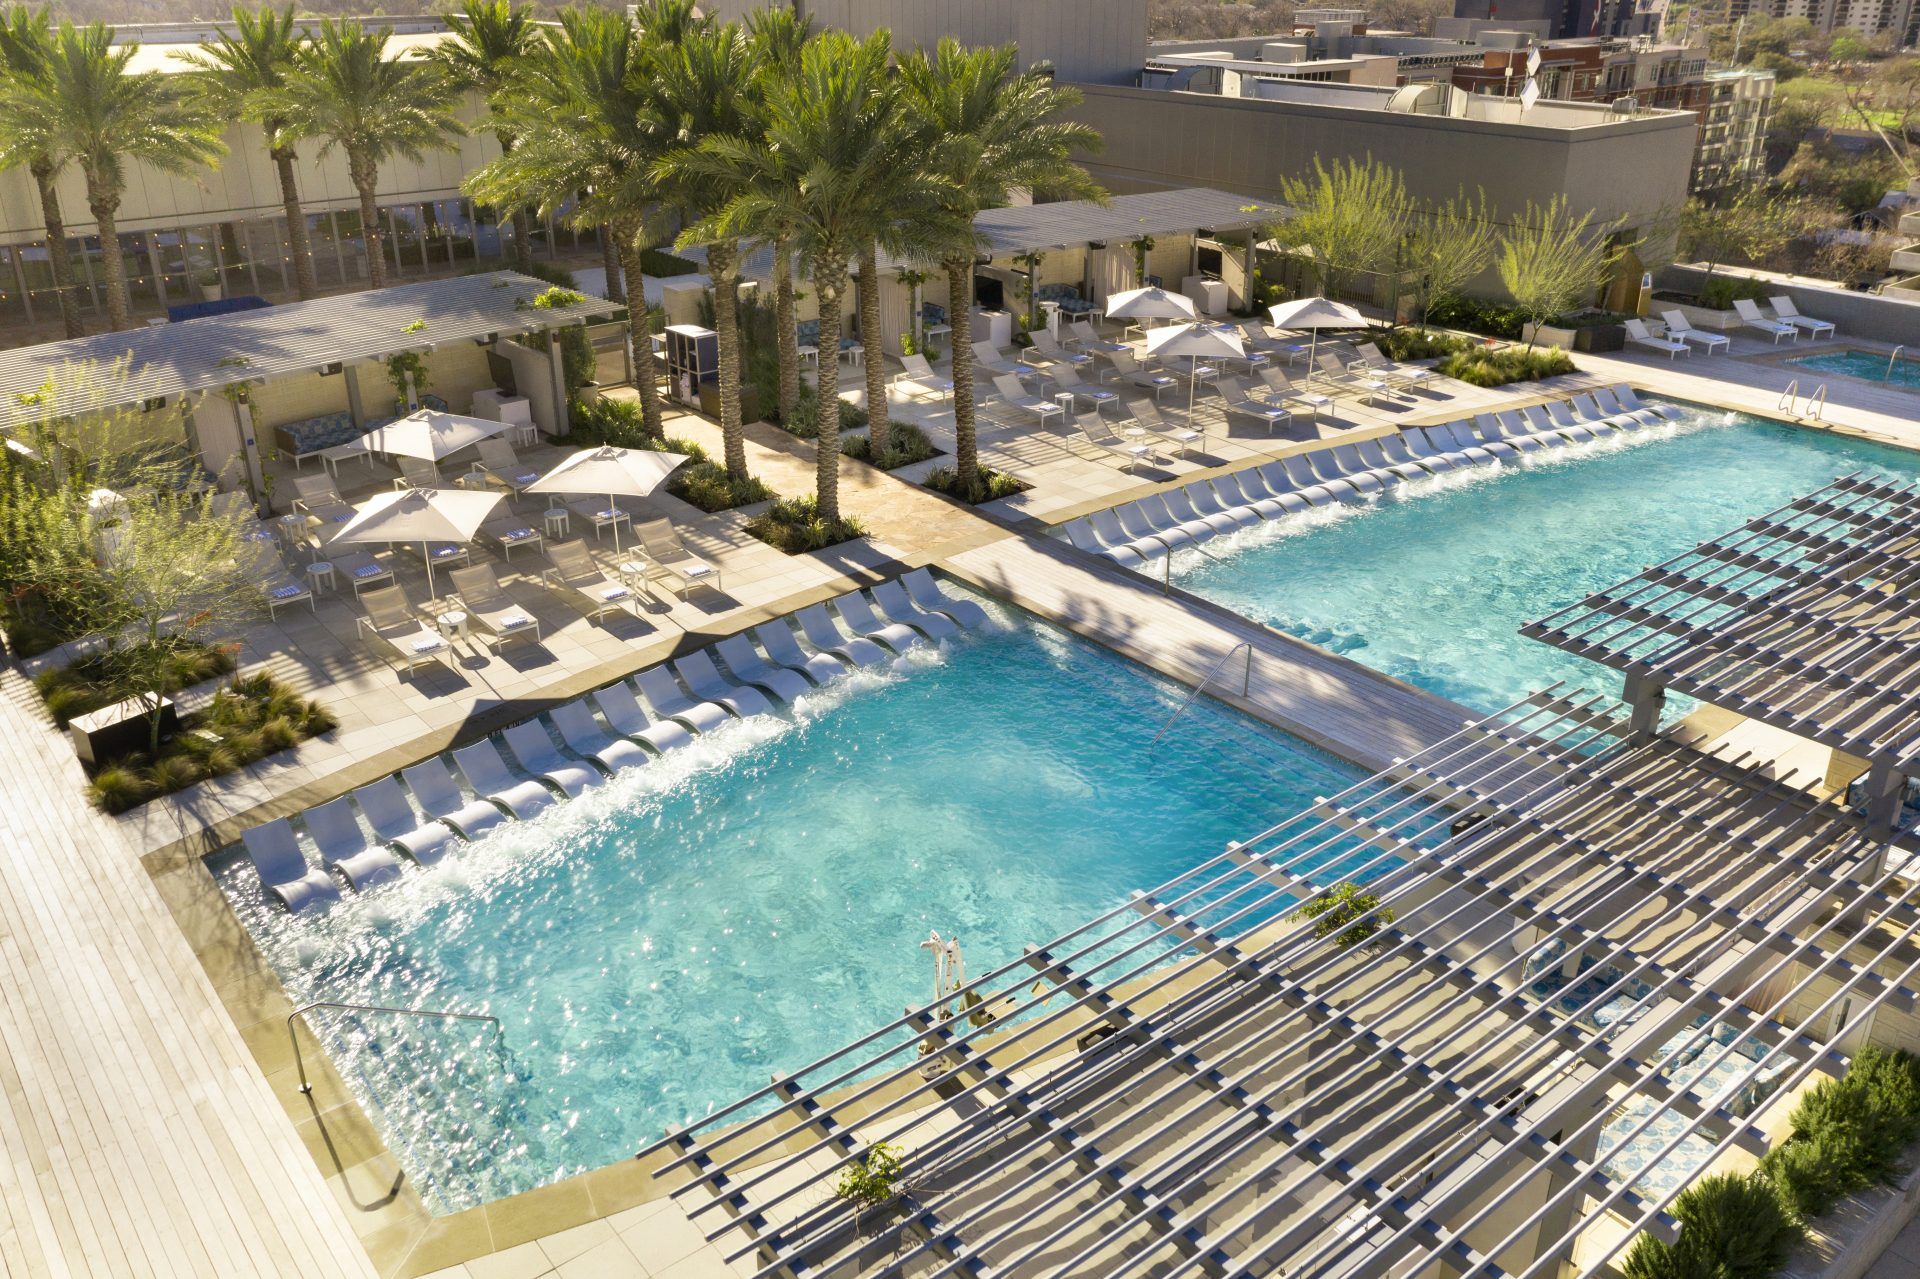 Aerial view of twin pools and pool deck with lounge chairs and palm trees